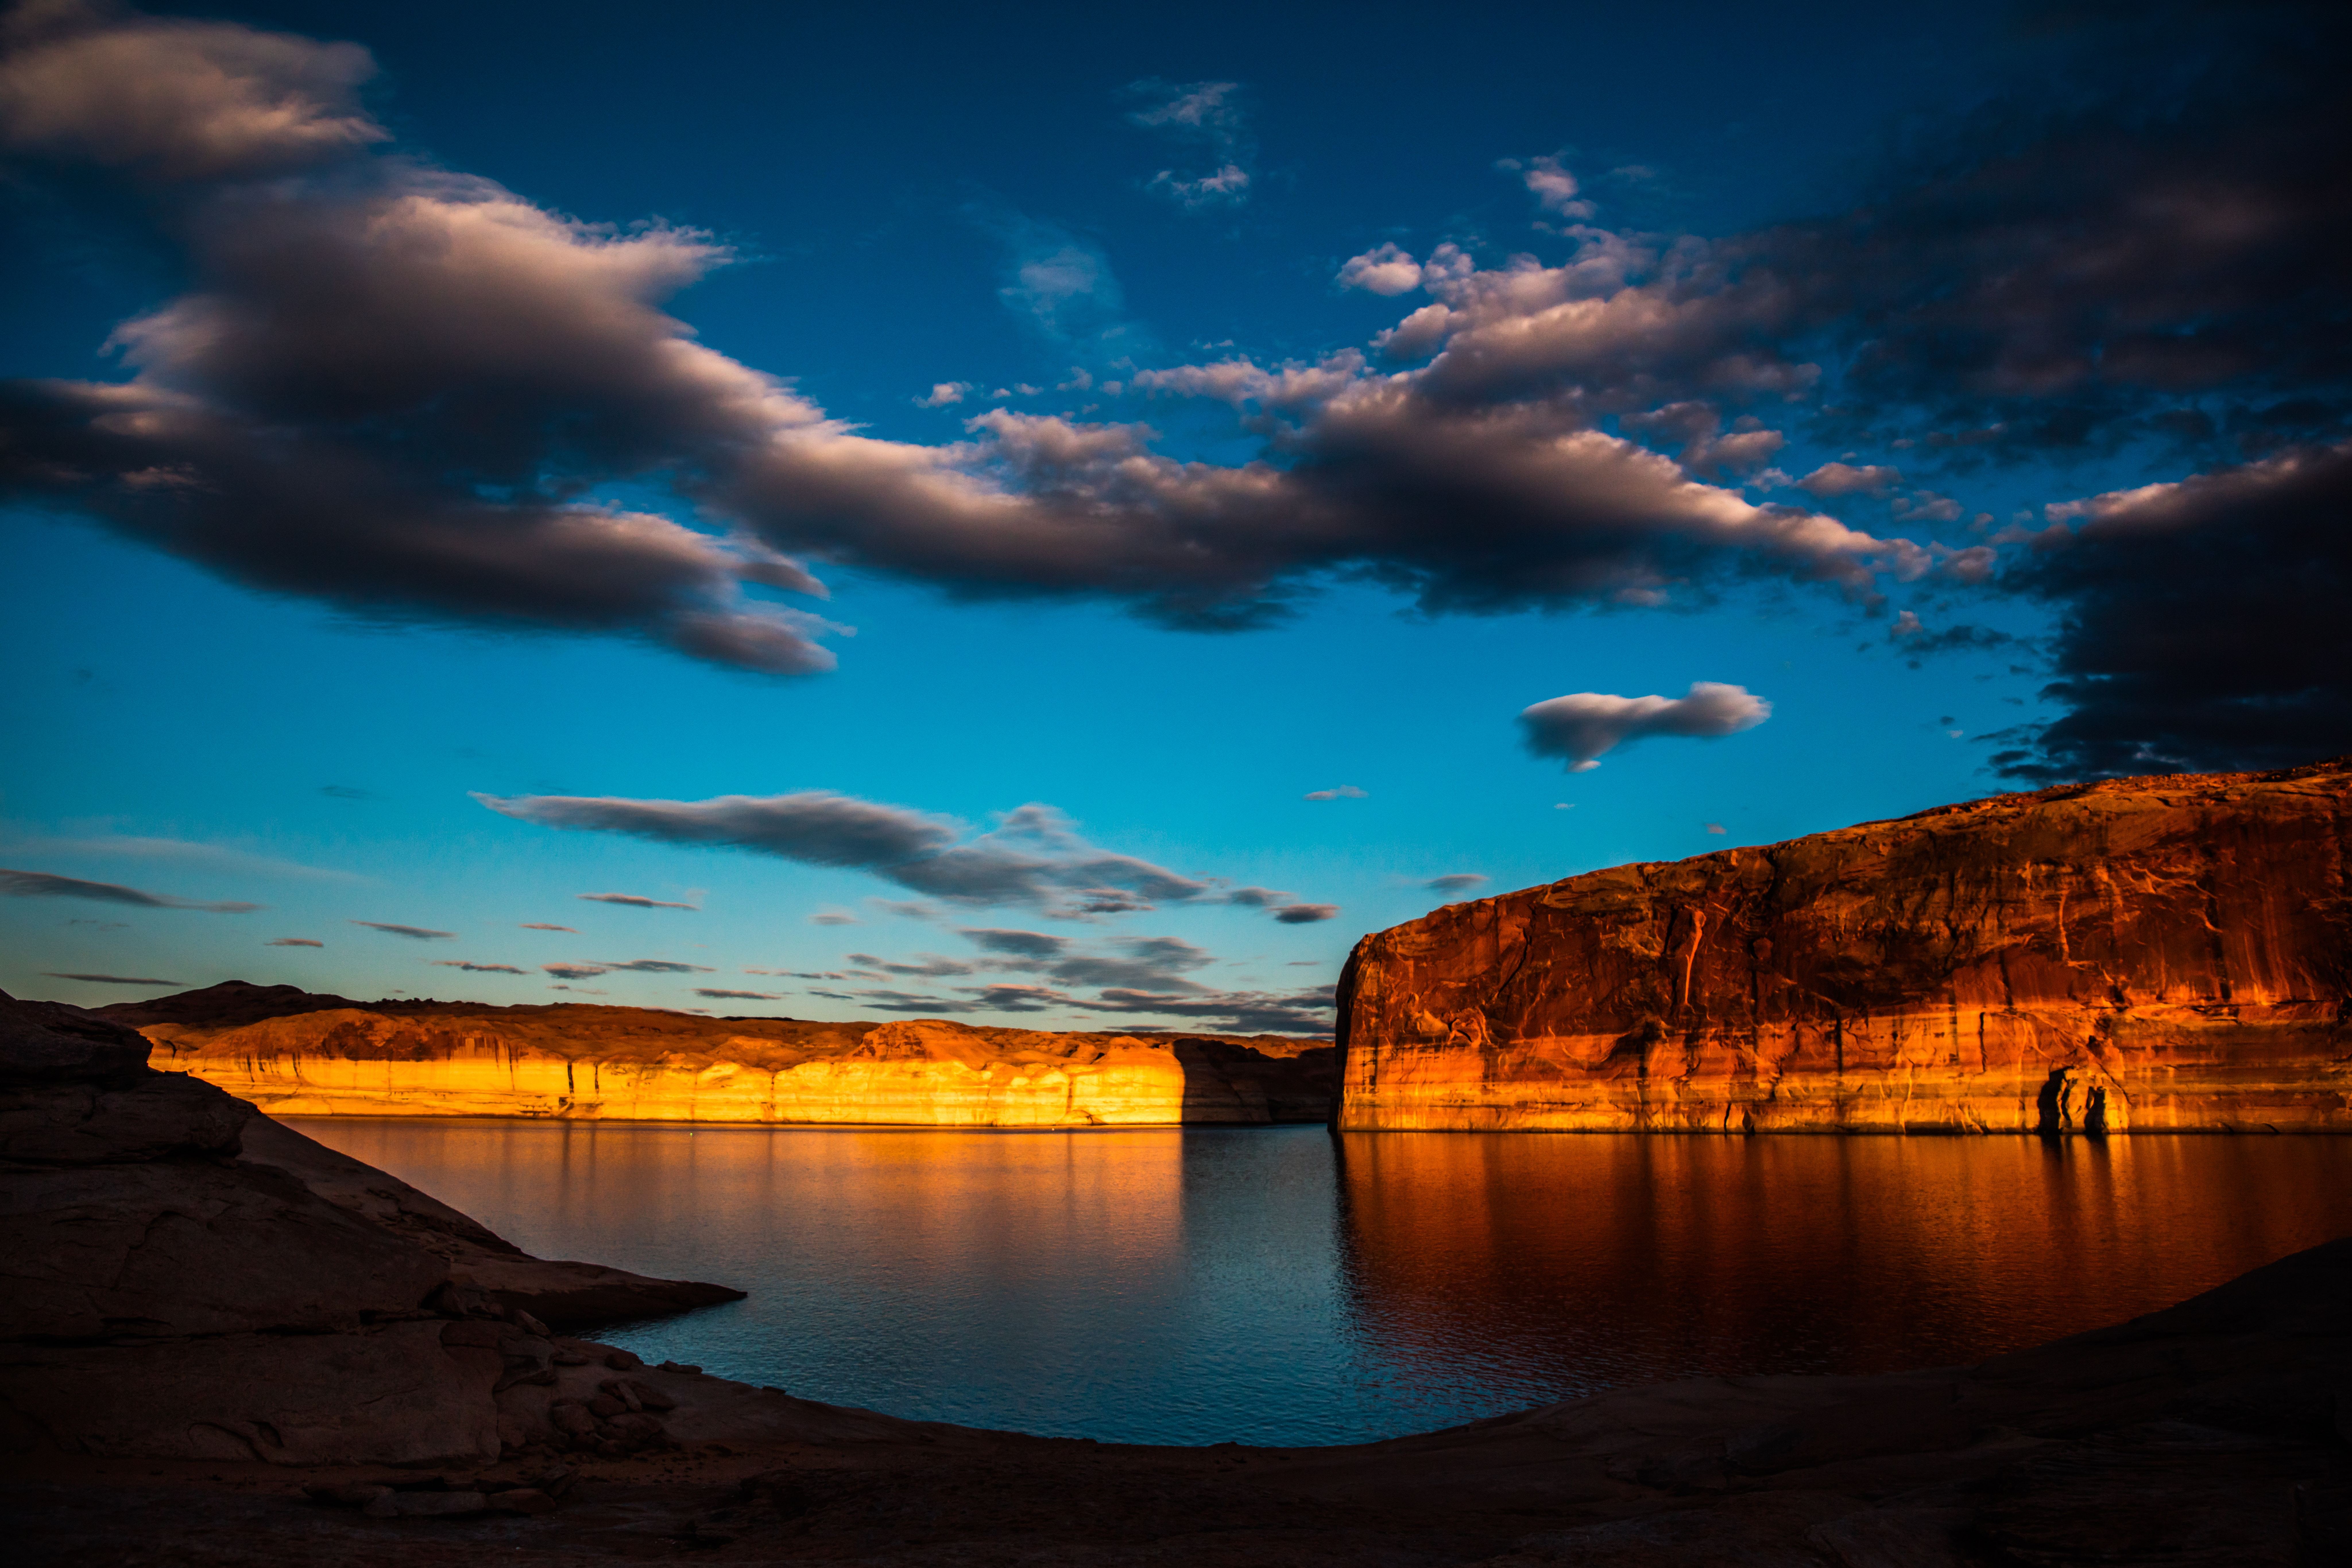 85092 download wallpaper Nature, Lake, Rocks, Canyon, Flooded, Submerged, Clouds screensavers and pictures for free